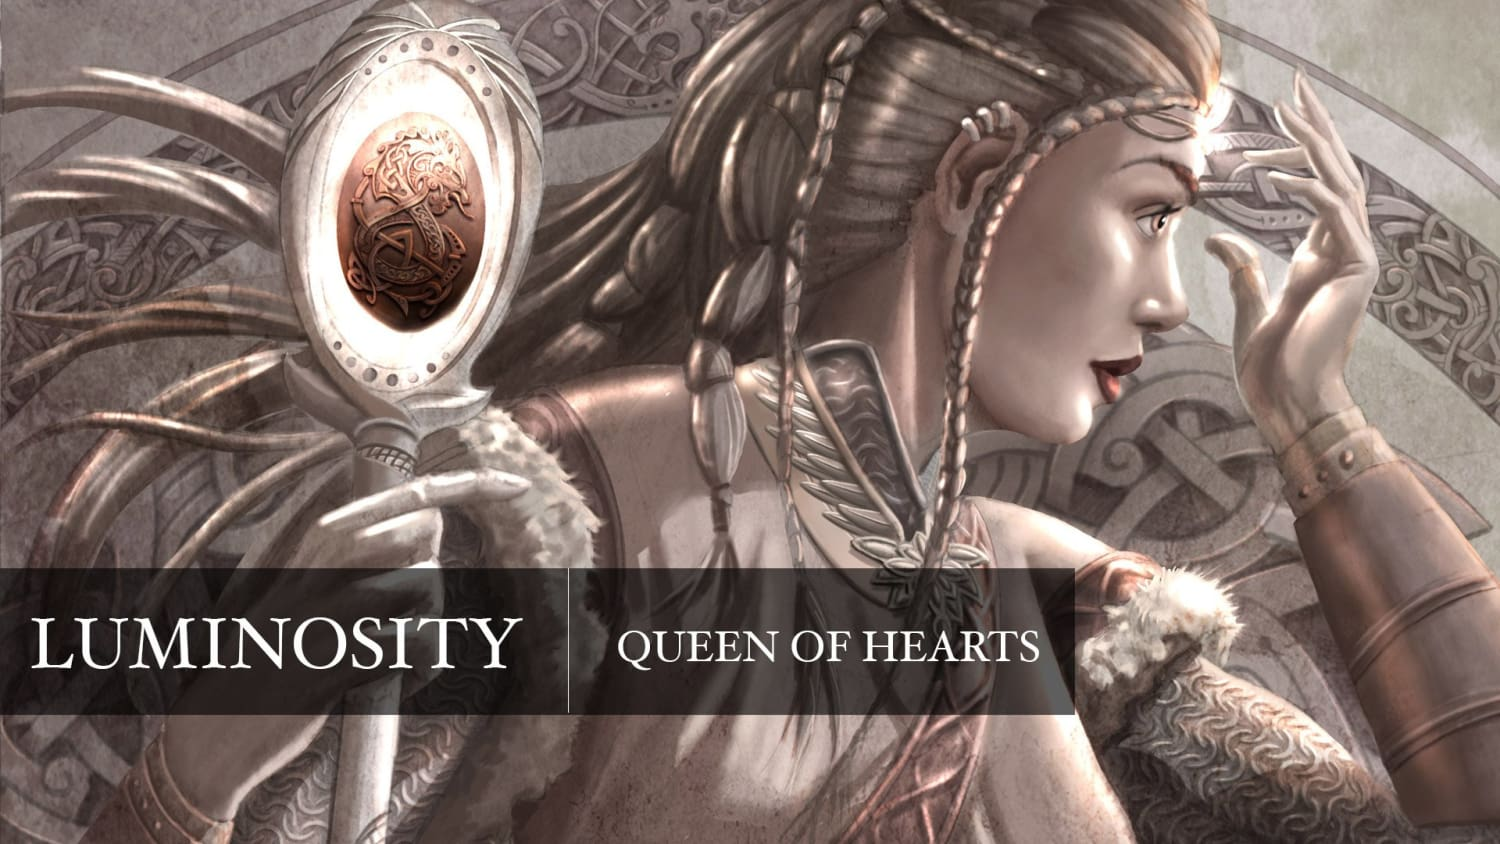 Luminosity - Queen of Hearts